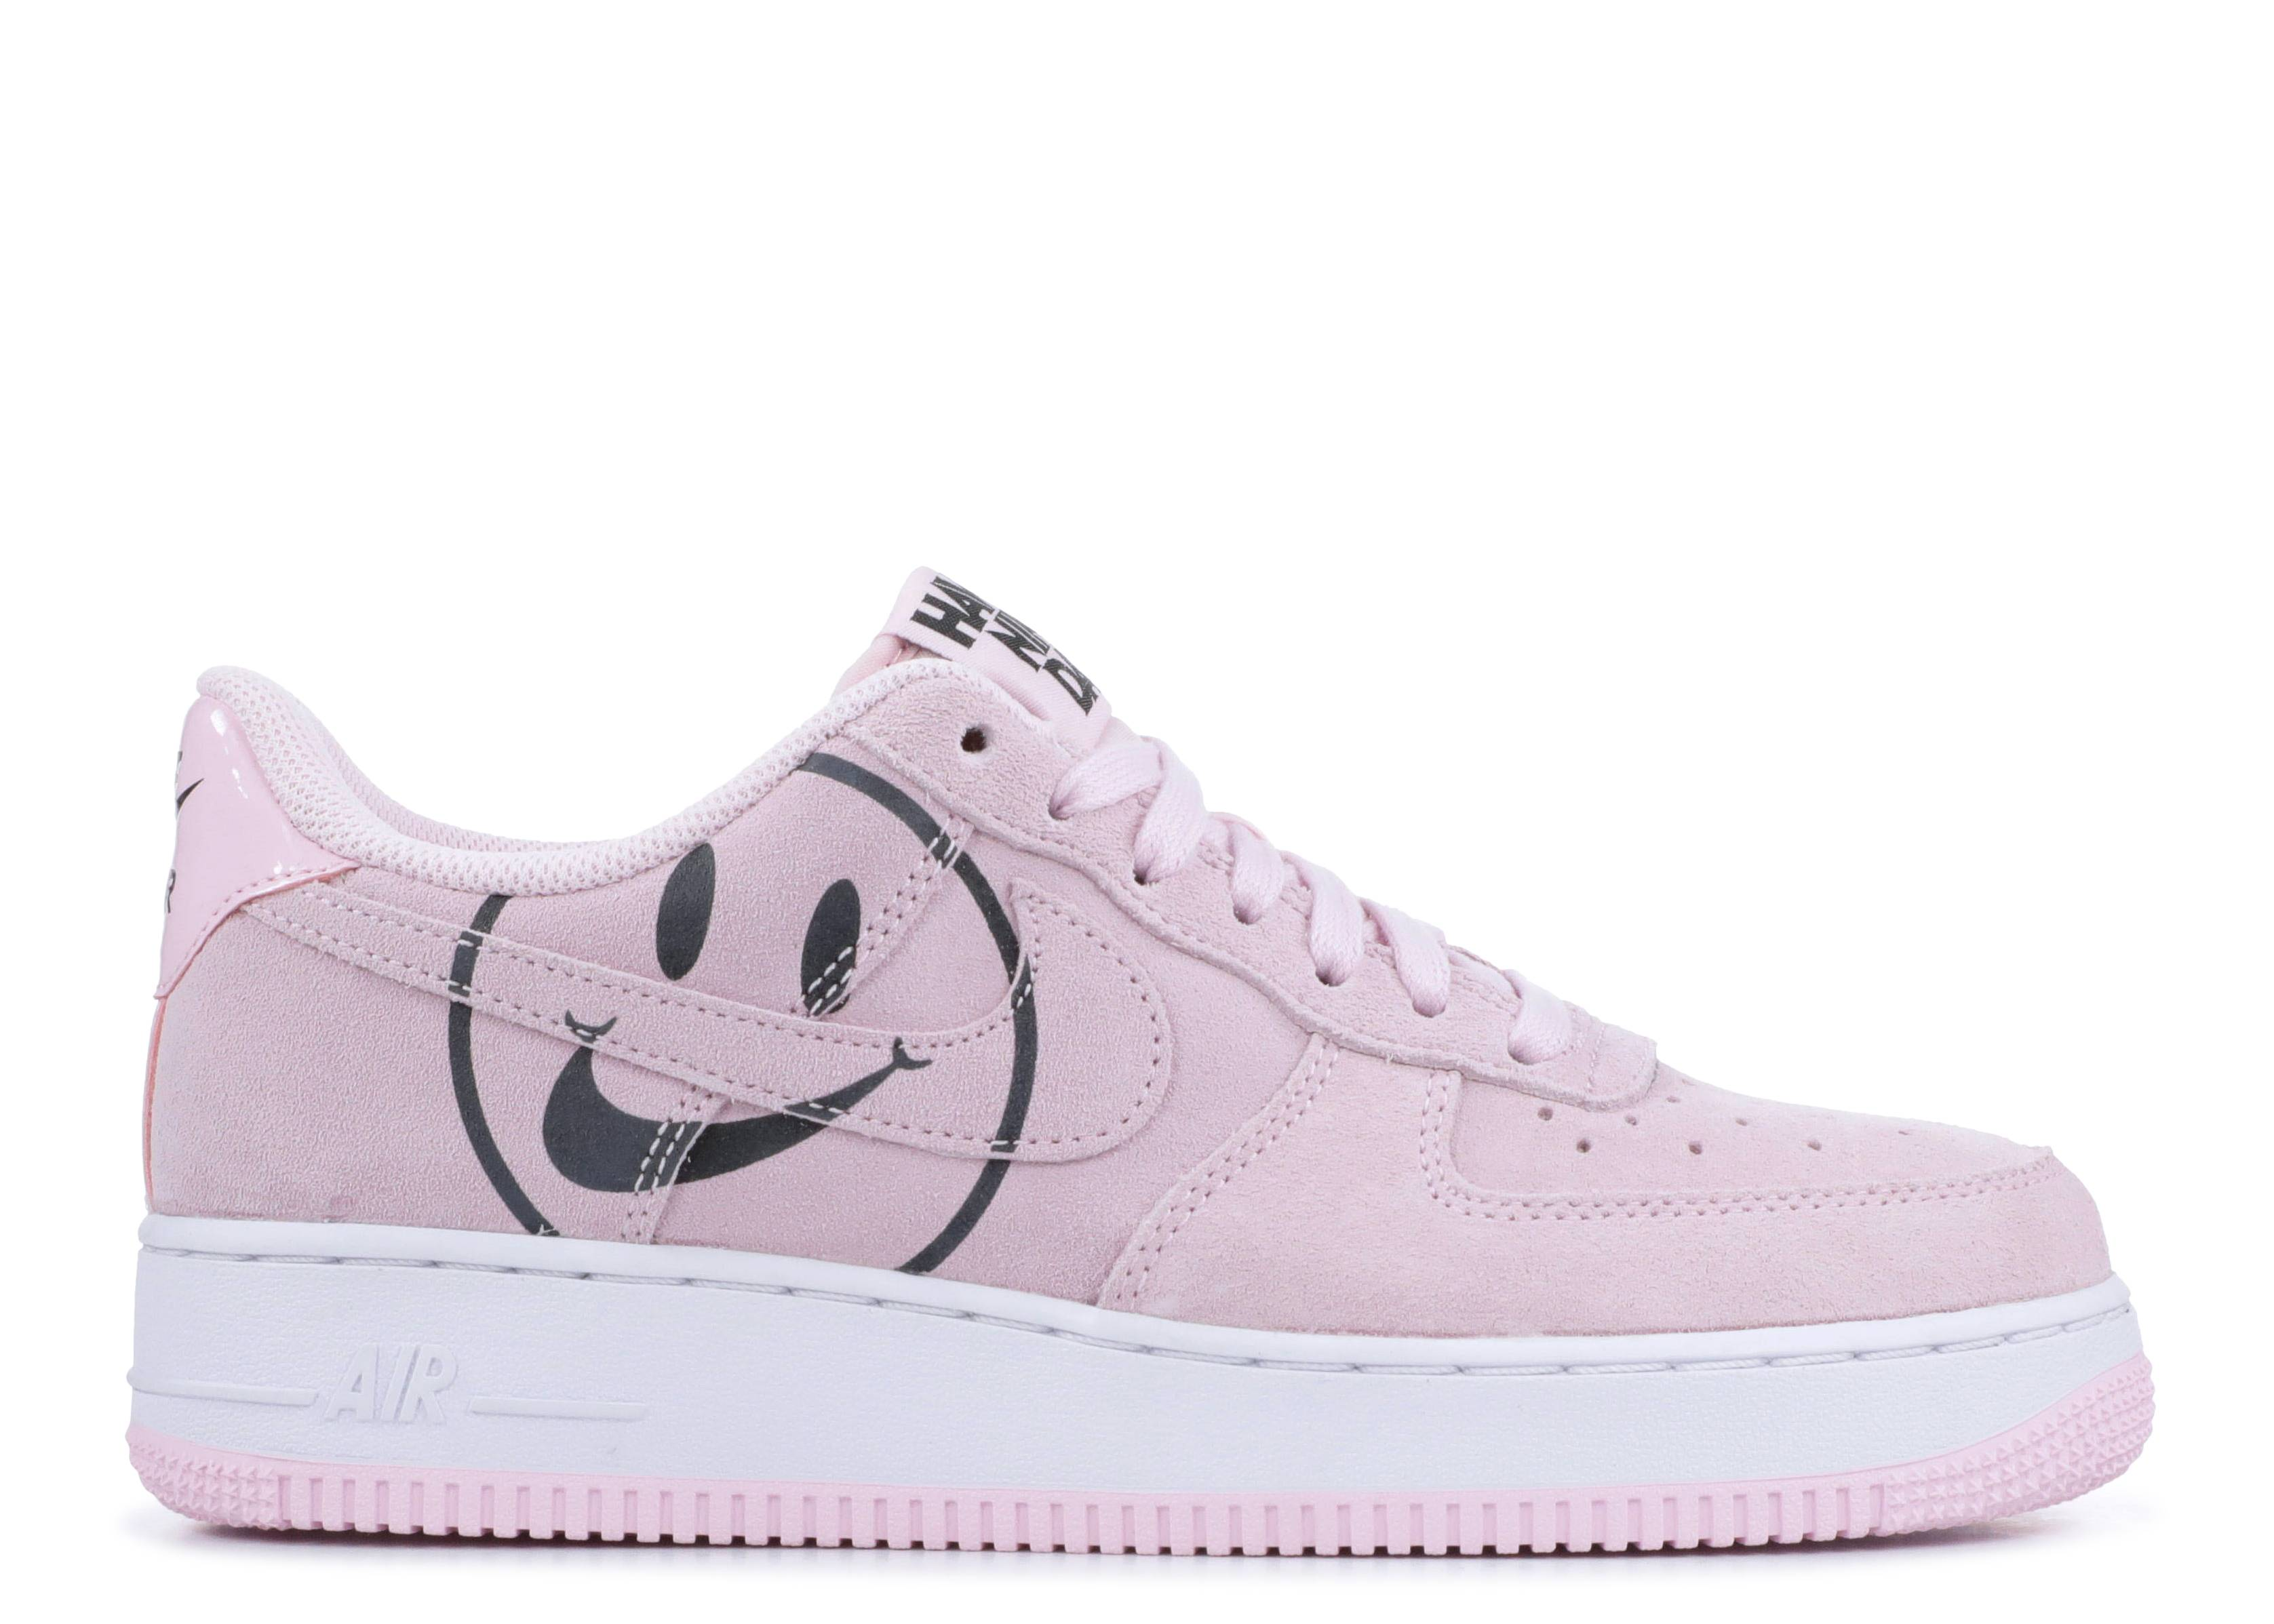 "Air Force 1 Low 'Have a Nike Day - Pink' ""HAVE A NIKE DAY - PINK"""